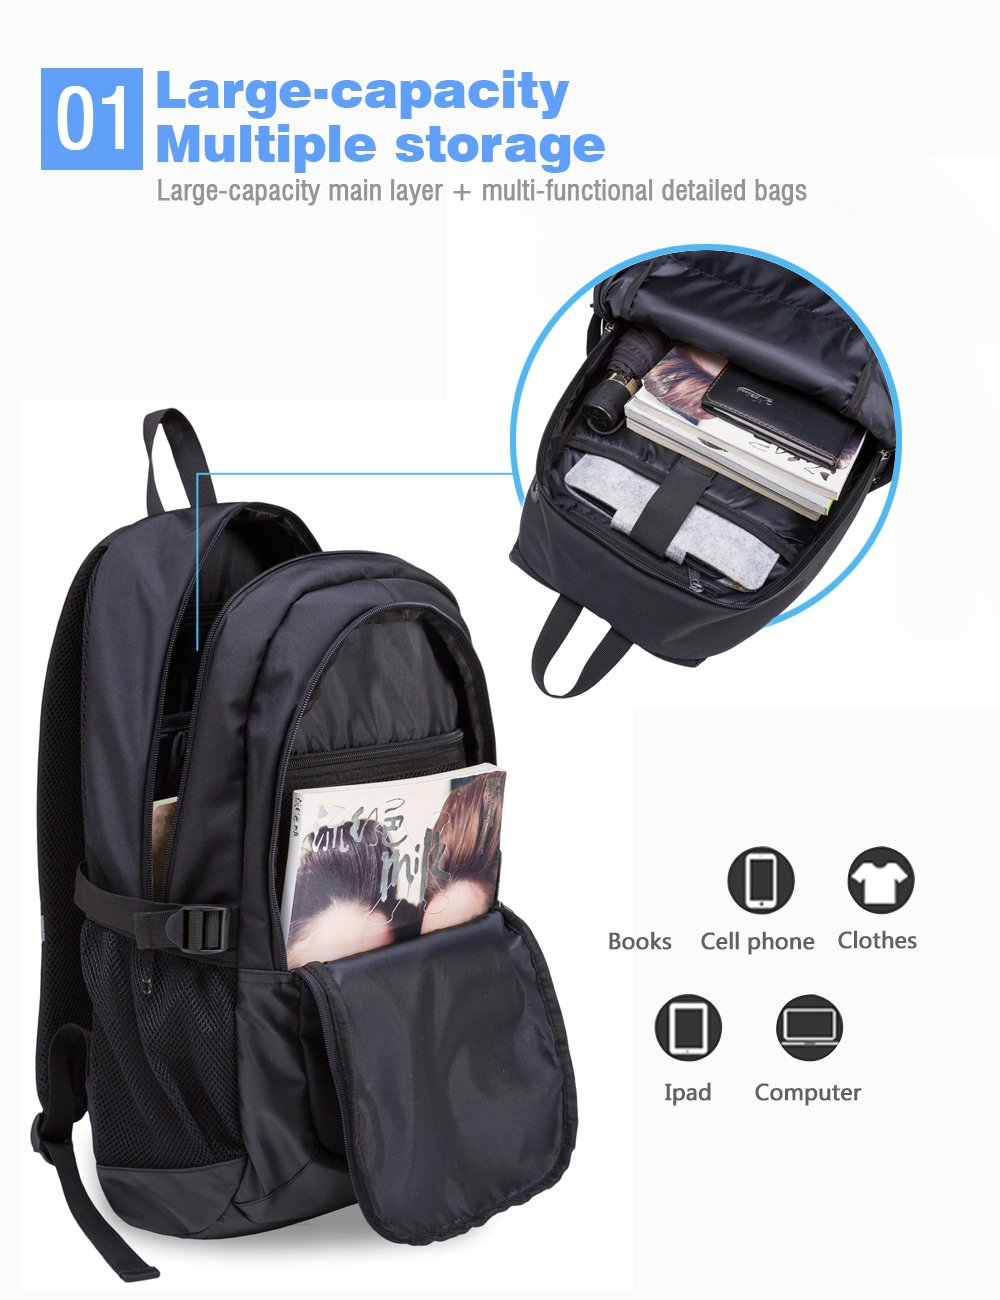 Laptop Backpack, Semir Anti Theft Water Resistant College School Backpack,Travel Computer Bag for Women Men,Business Backpack Fits Under 17.3-Inch Laptop and Notebook (Original Black)